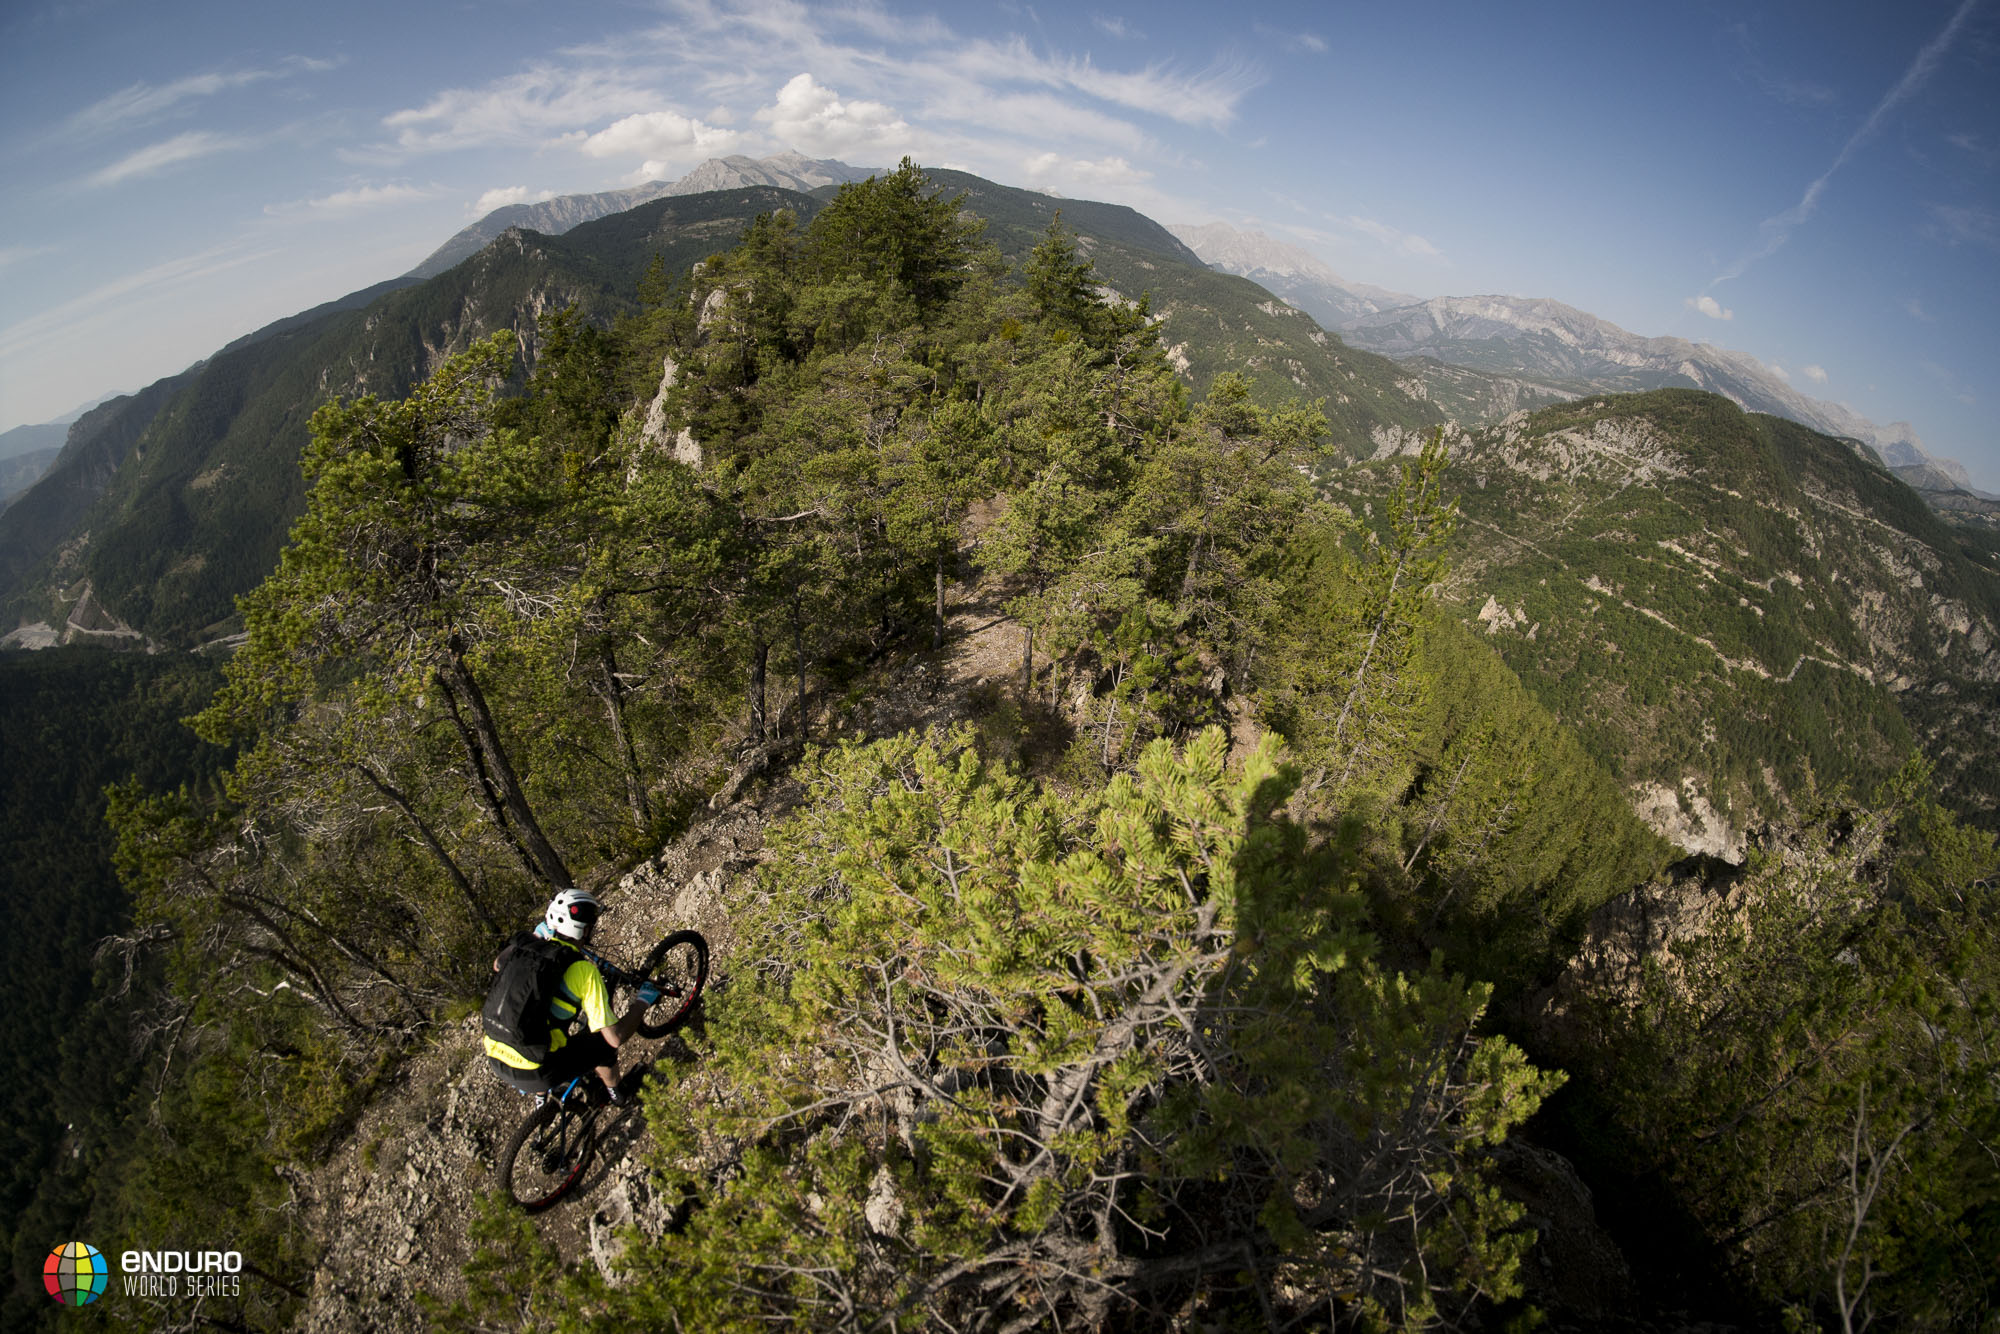 Riding ridgelines never gets old with the 360 degree views